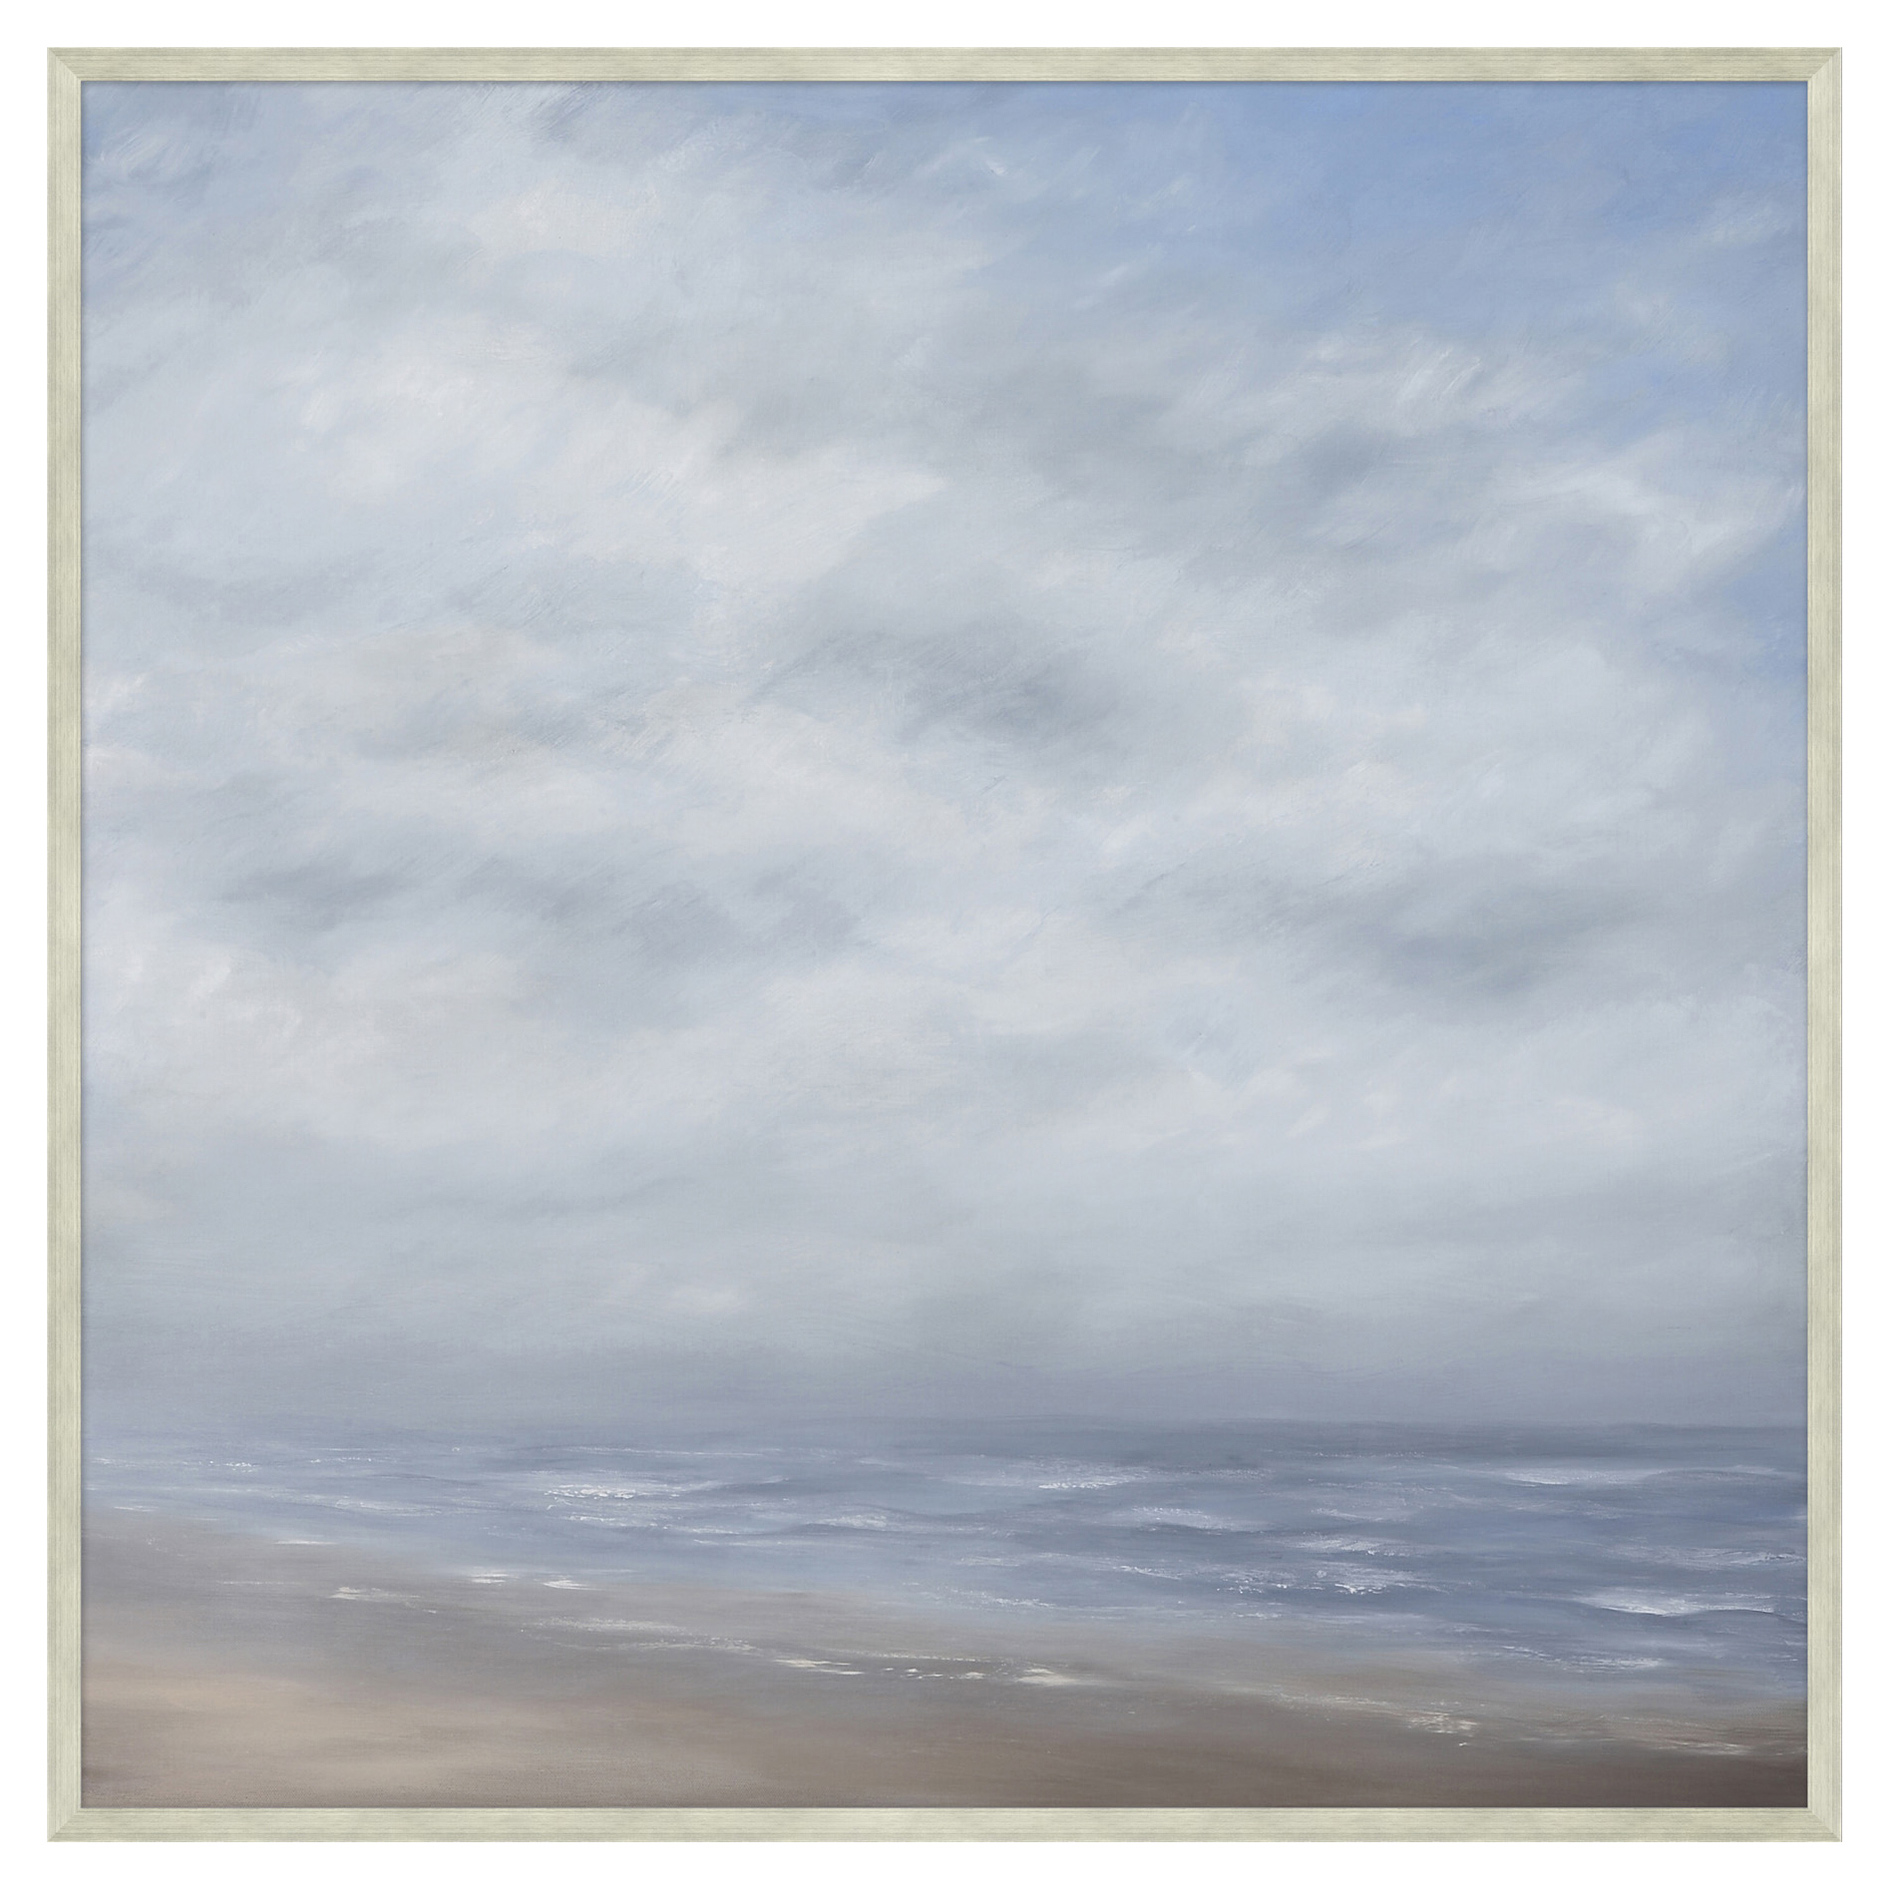 Cloudy Grey Wave Break Abstract Giclee Canvas Painting